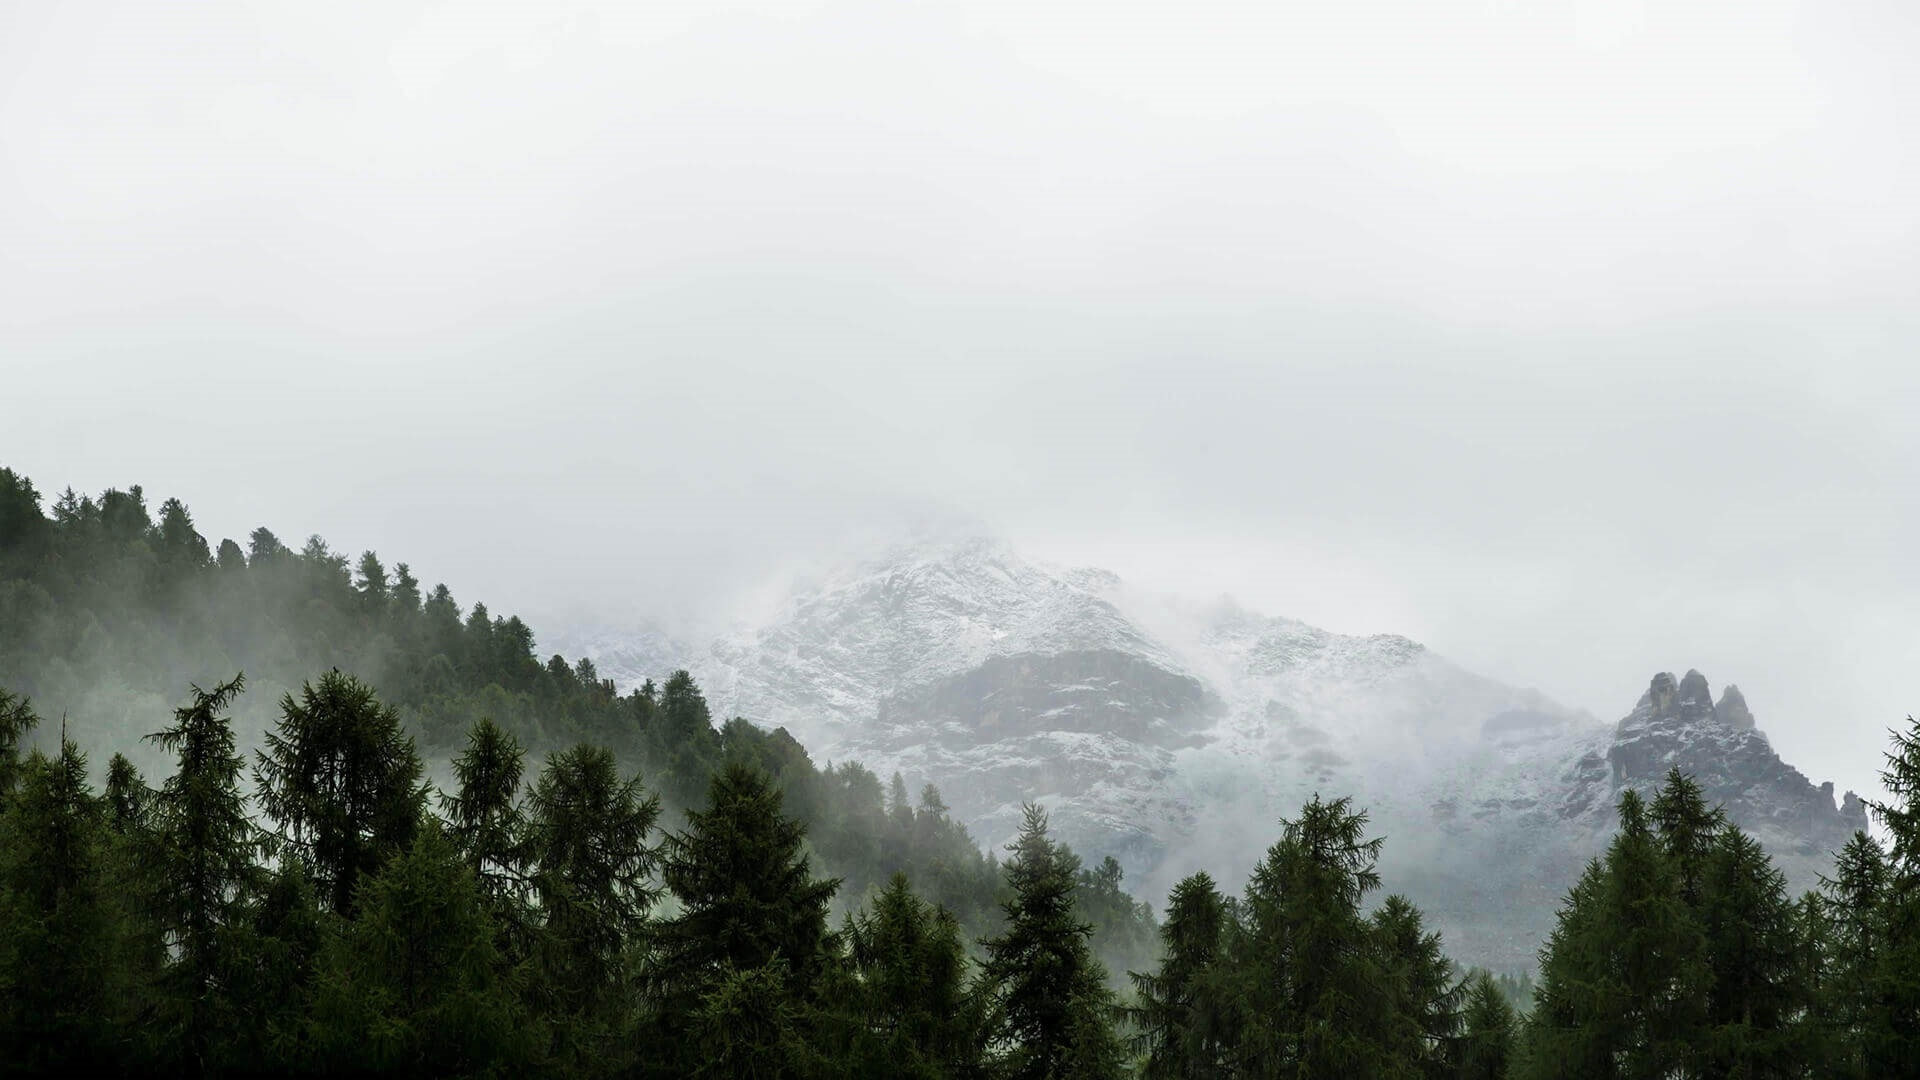 Mountains And Forest In Fog Desktop Wallpaper